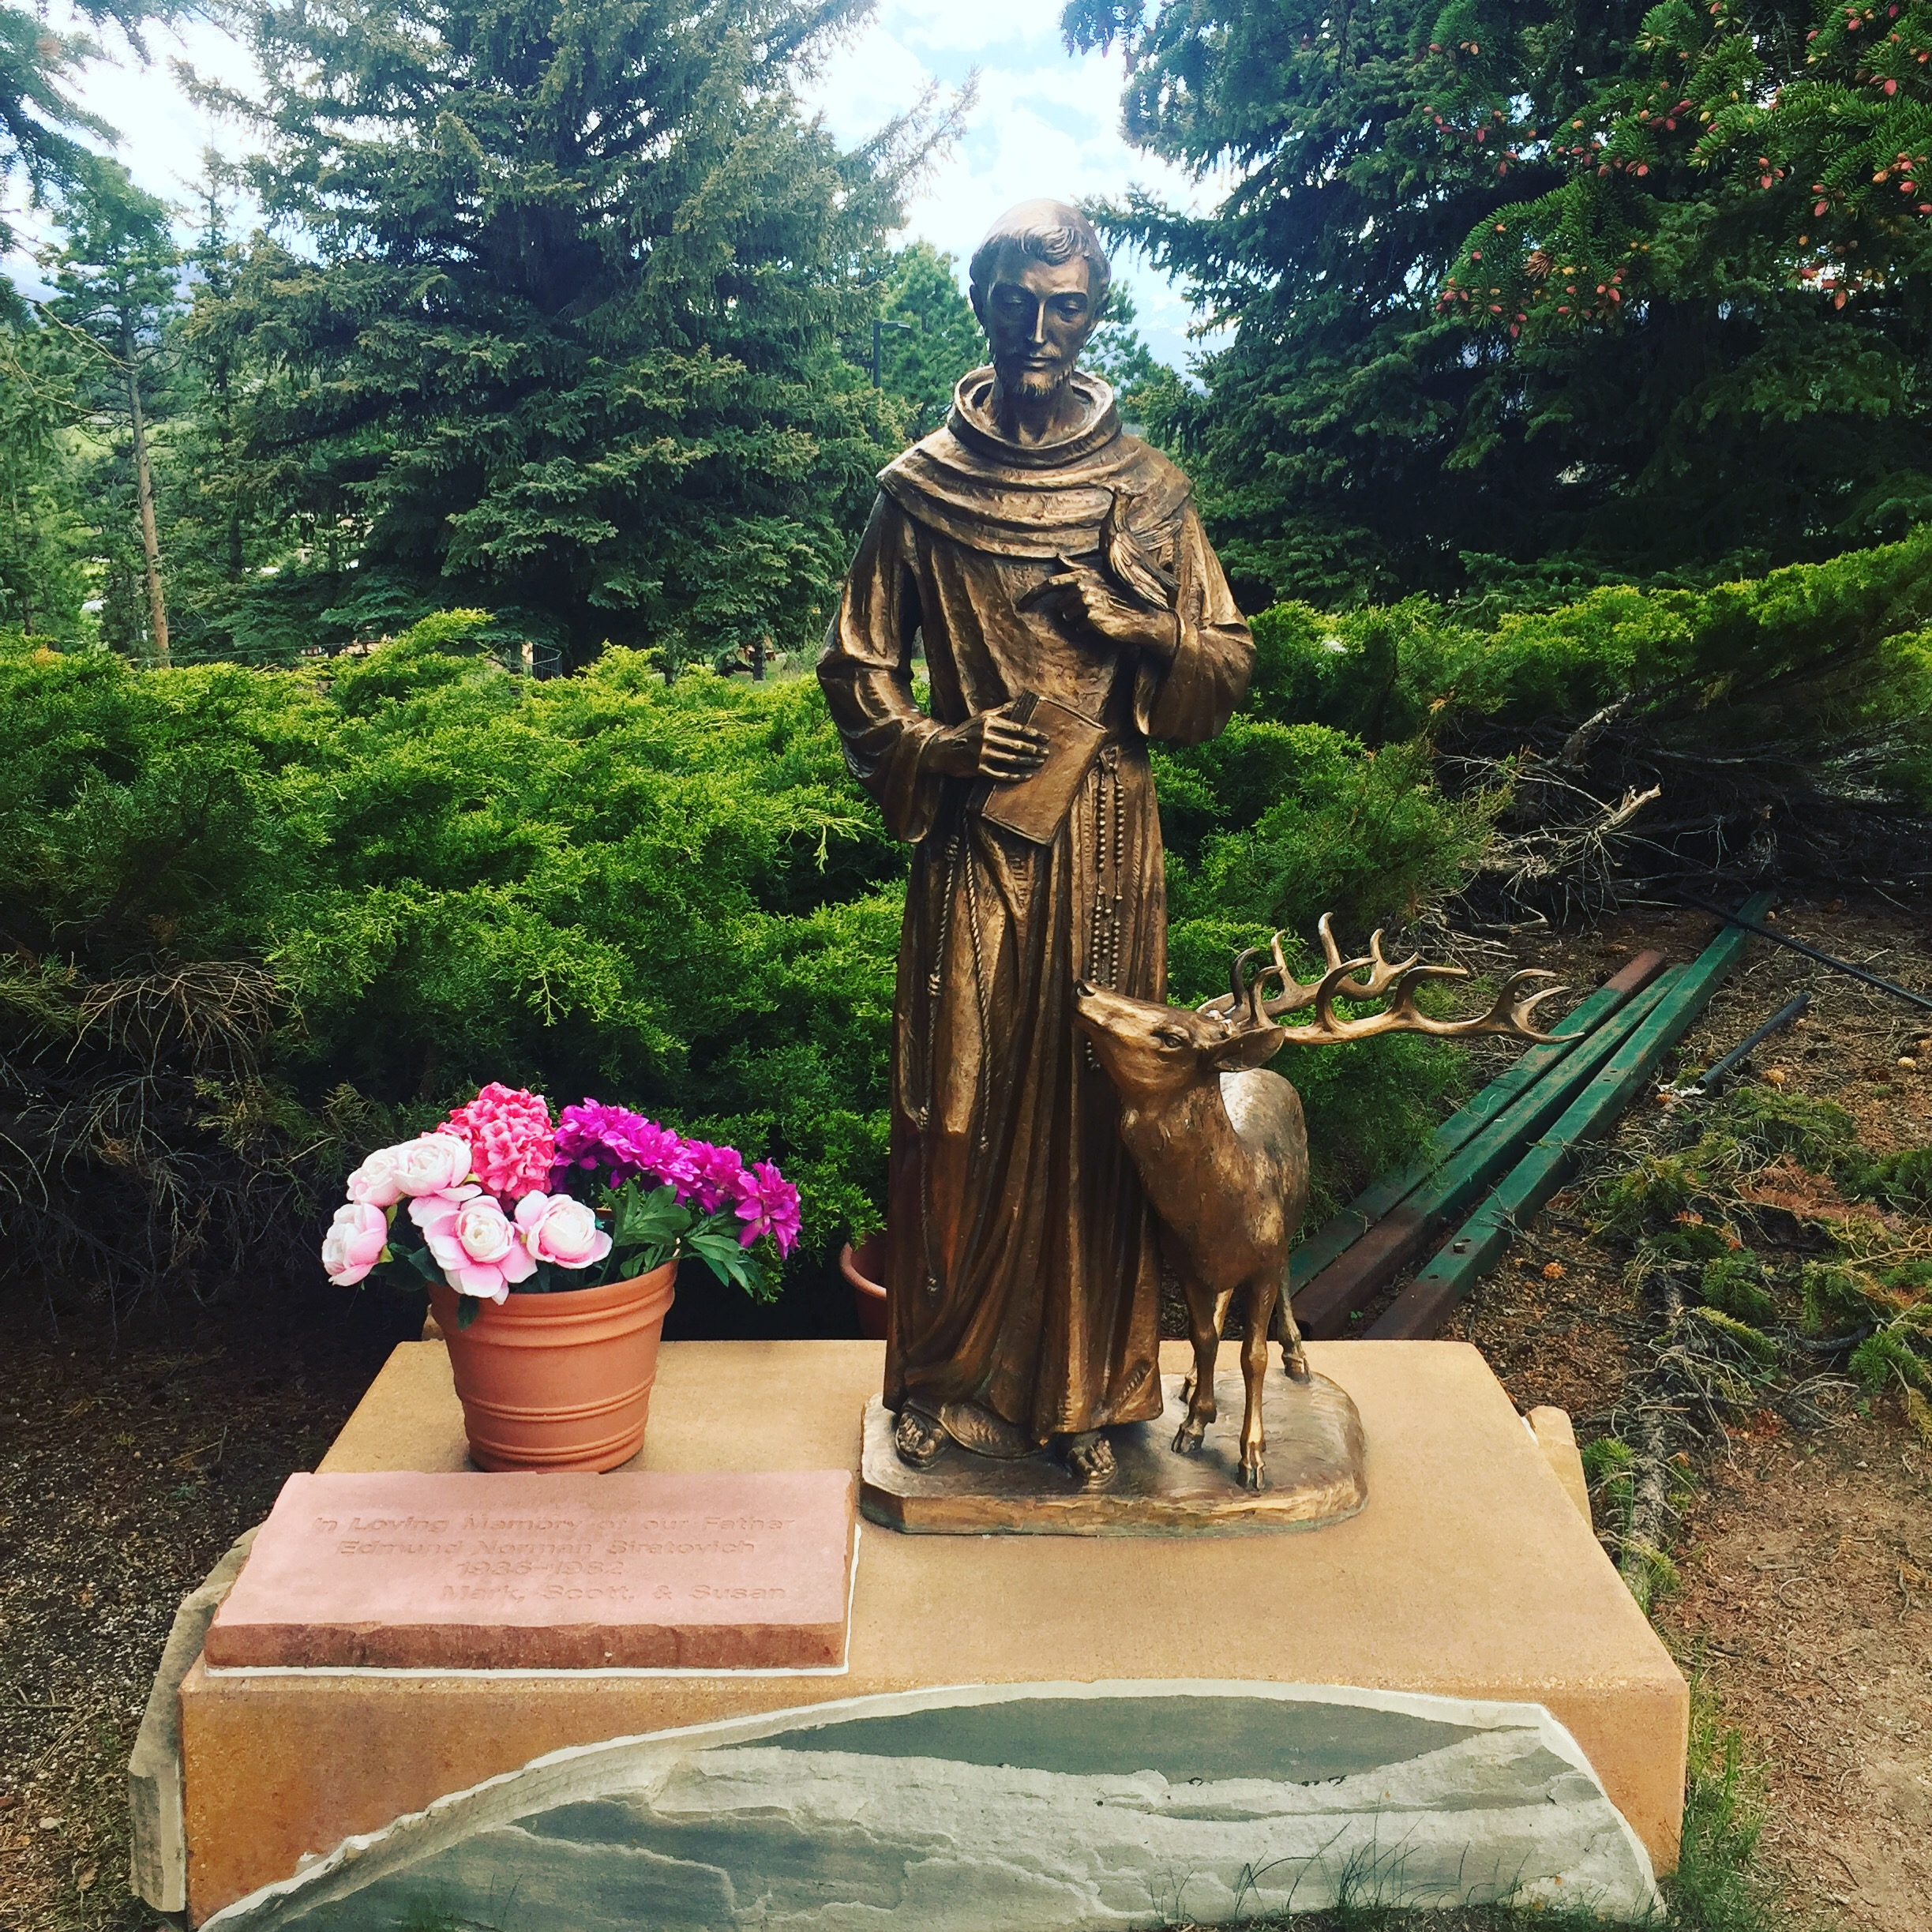 St. Francis with Brother Elk. I saw quite a few people coming to pray here while we were there. It seems like a really popular devotional spot in Estes Park!